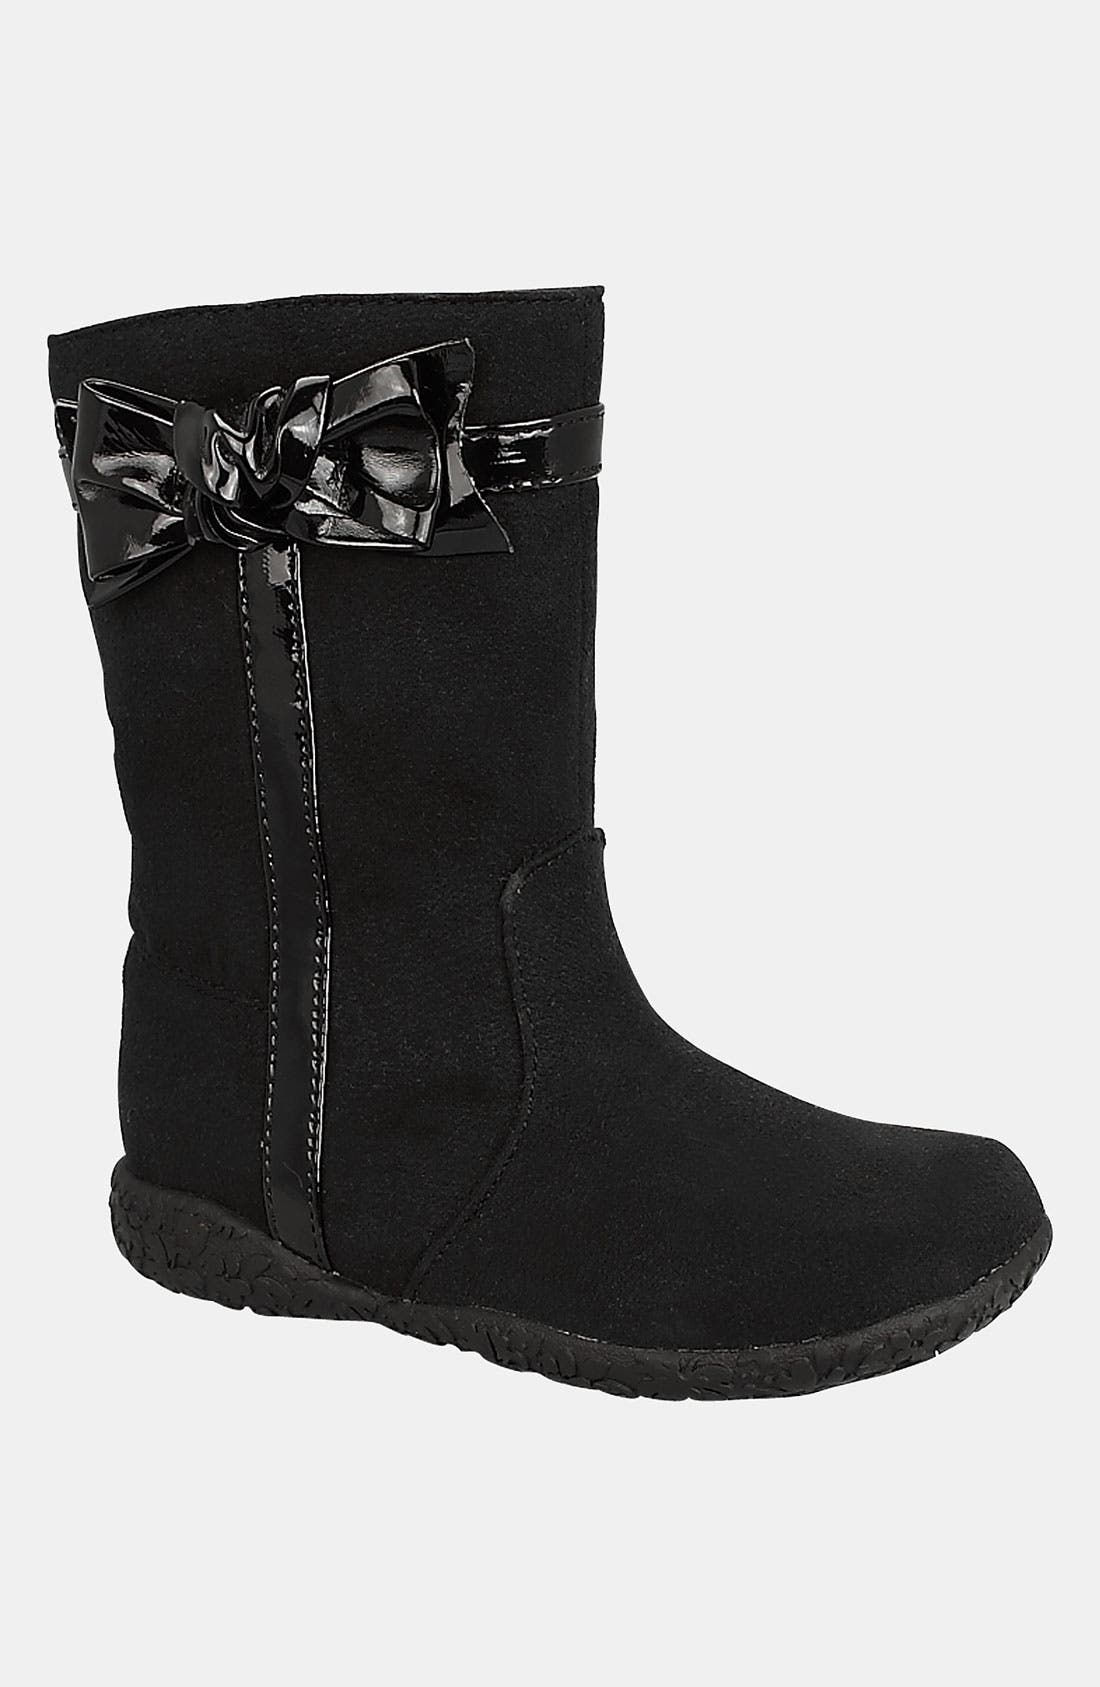 'Rosabel' Boot,                             Main thumbnail 1, color,                             Black/ Black